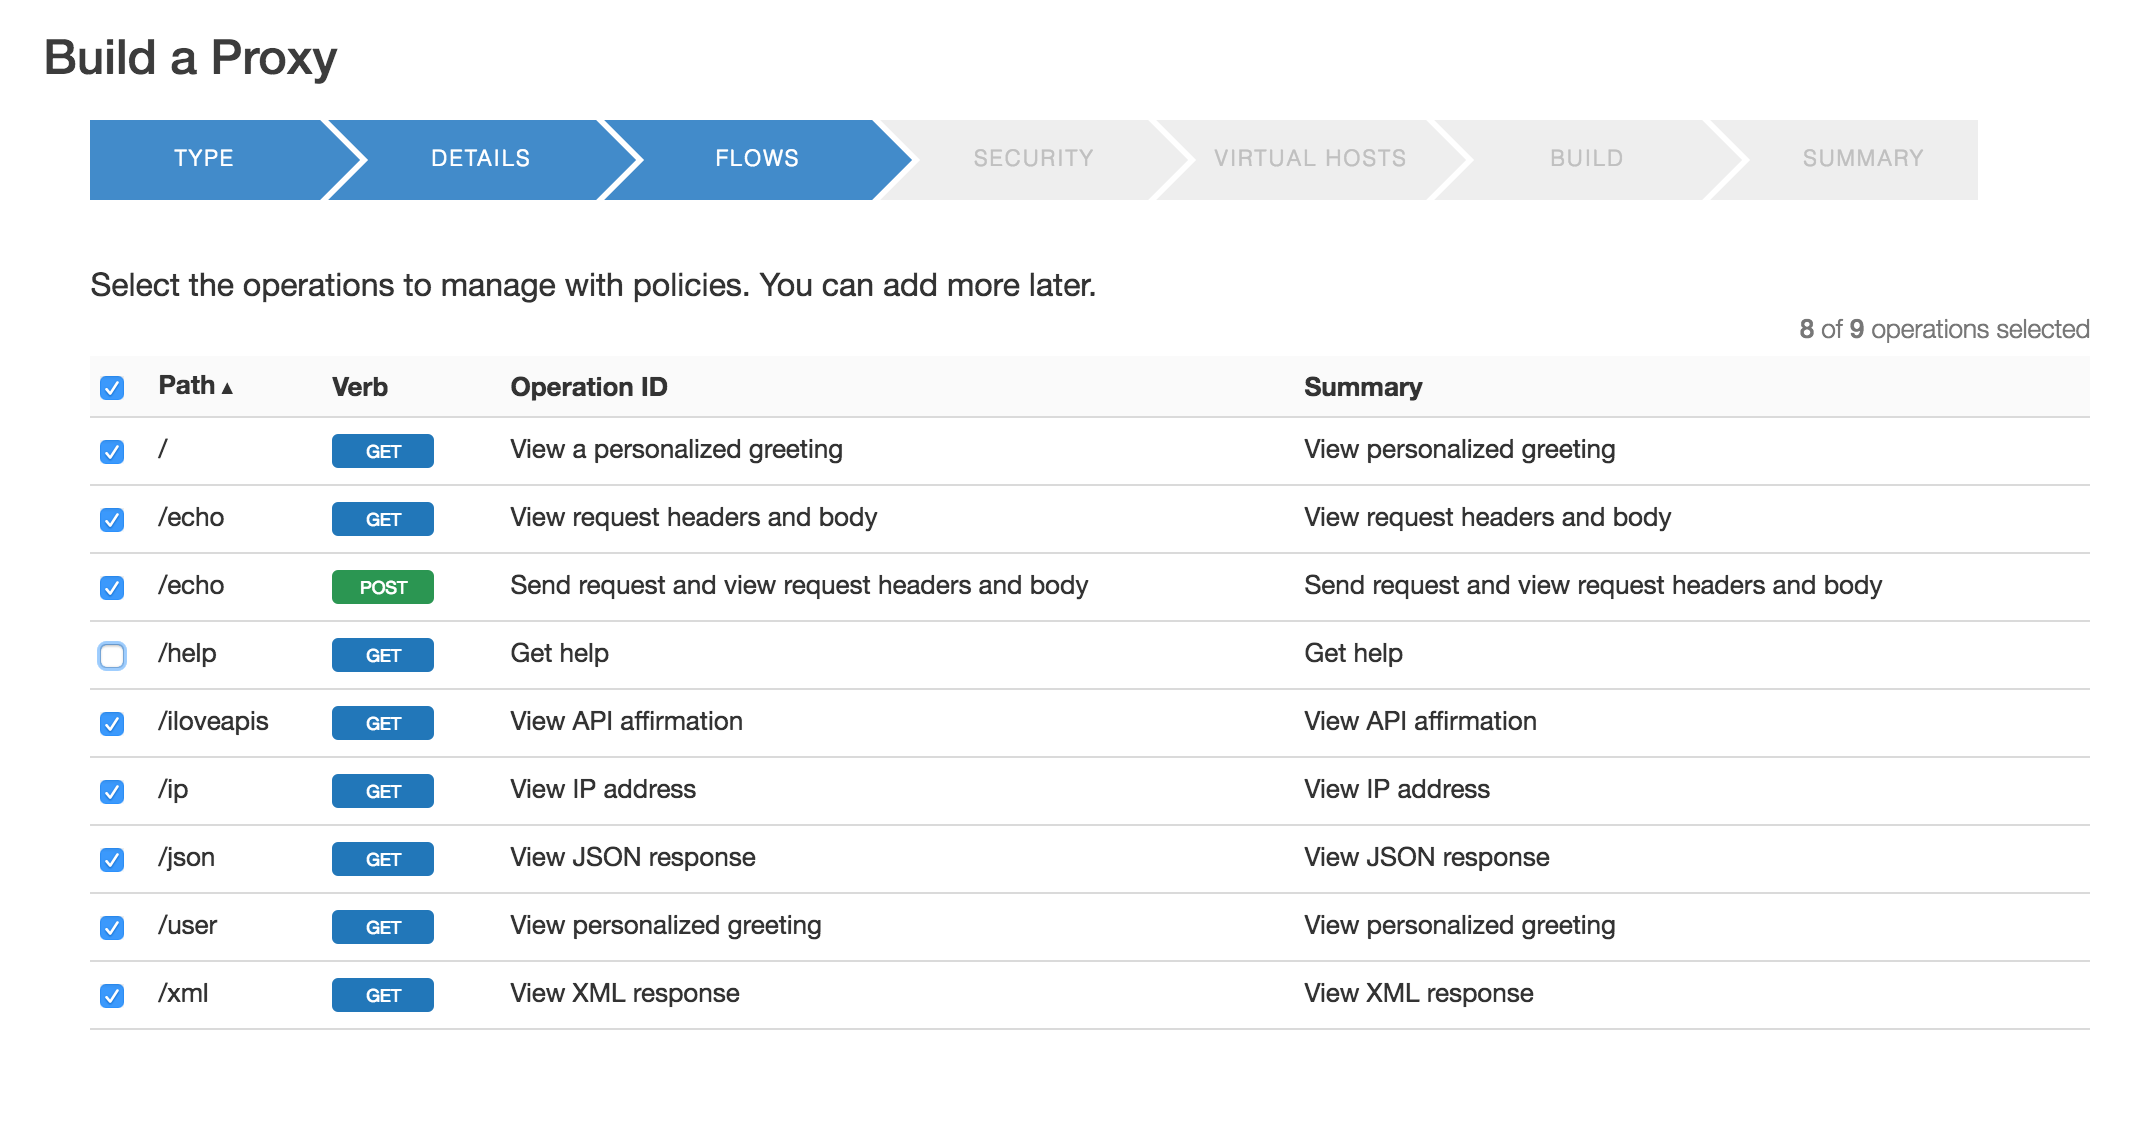 Build a Proxy Flows page showing the path, verb, operation ID, and summary for each of the operations in the Mock Target API. All are seleted except for /help.